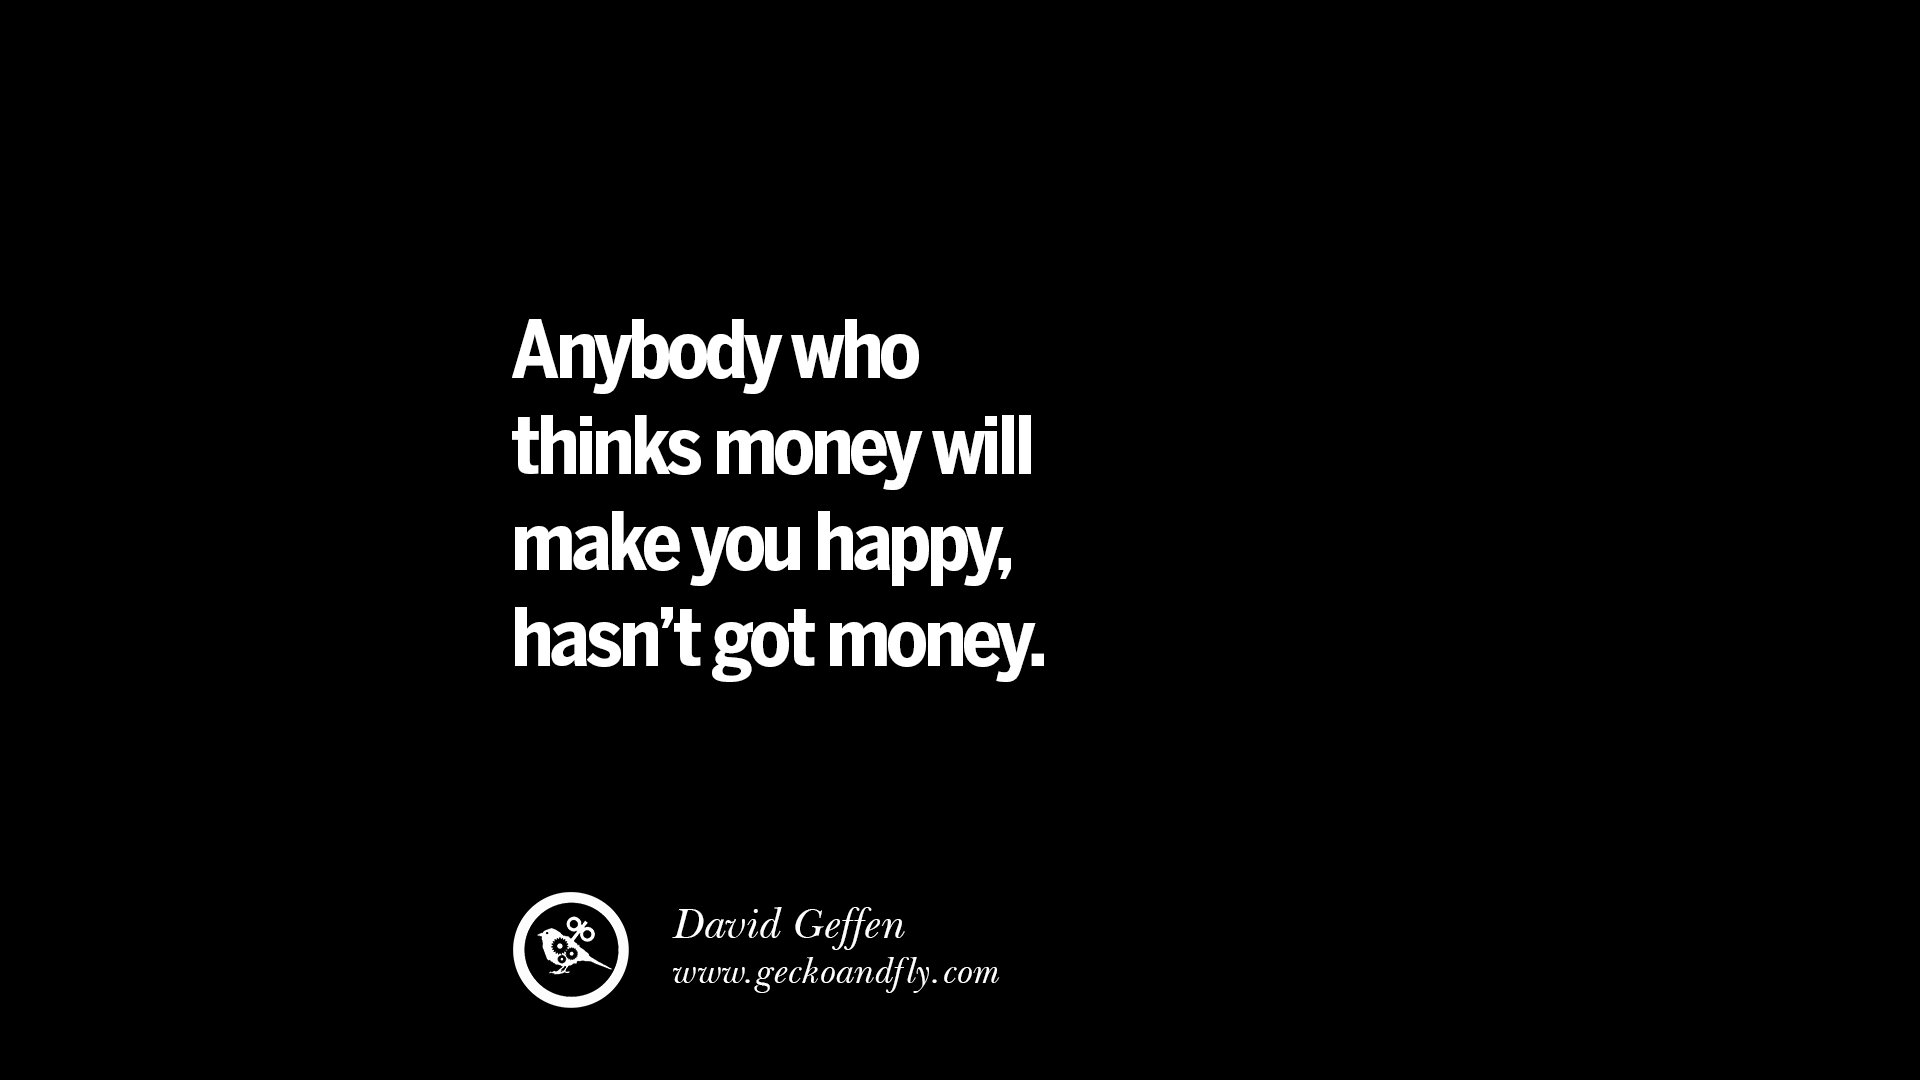 Quotes To Make You Happy 10 Golden Rules On Money & 20 Inspiring Quotes About Money